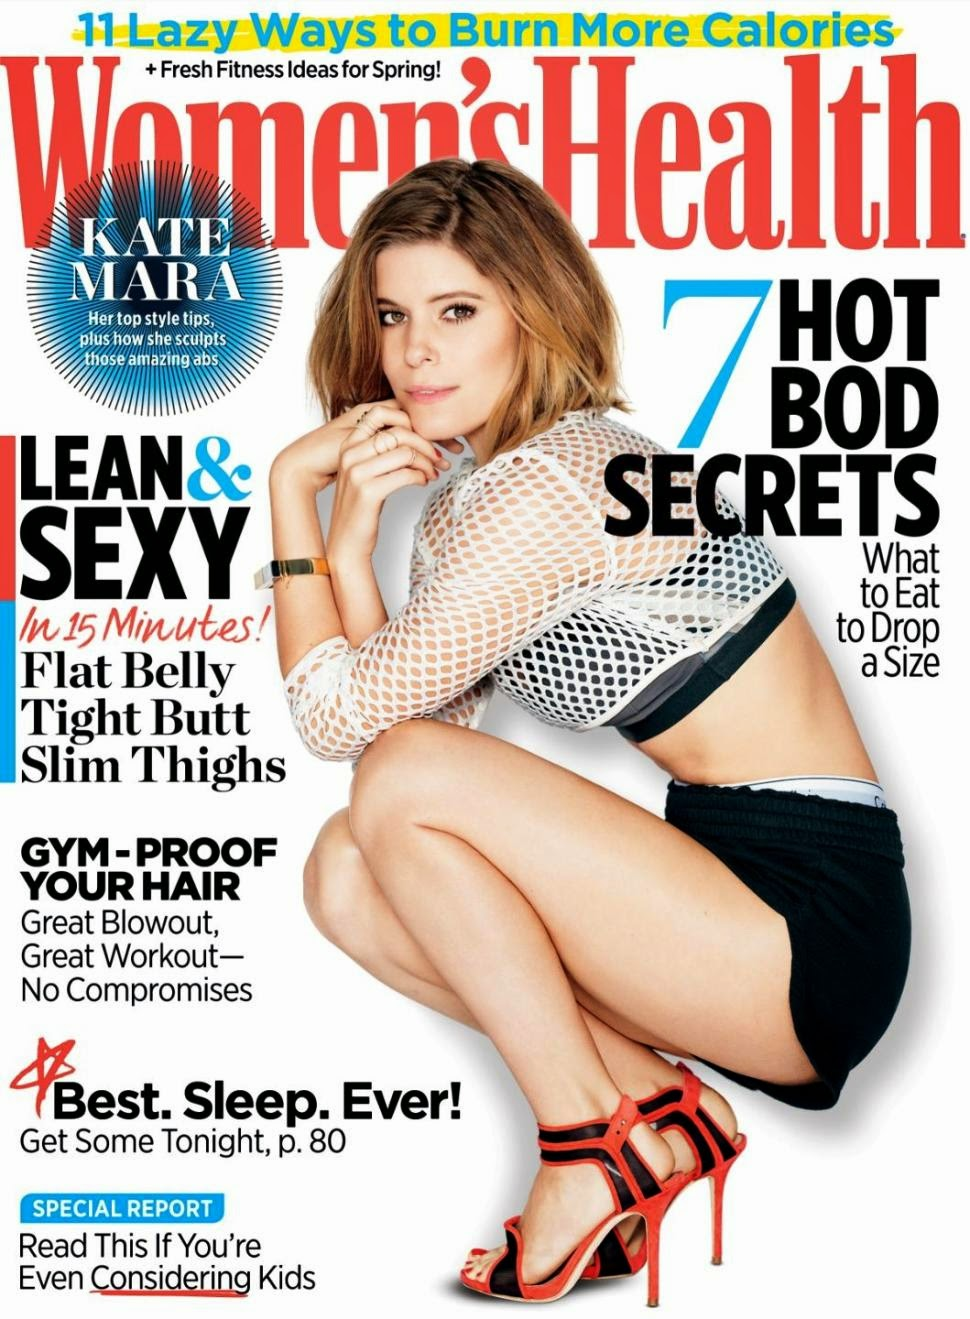 Actress: Kate Mara for Women's Health